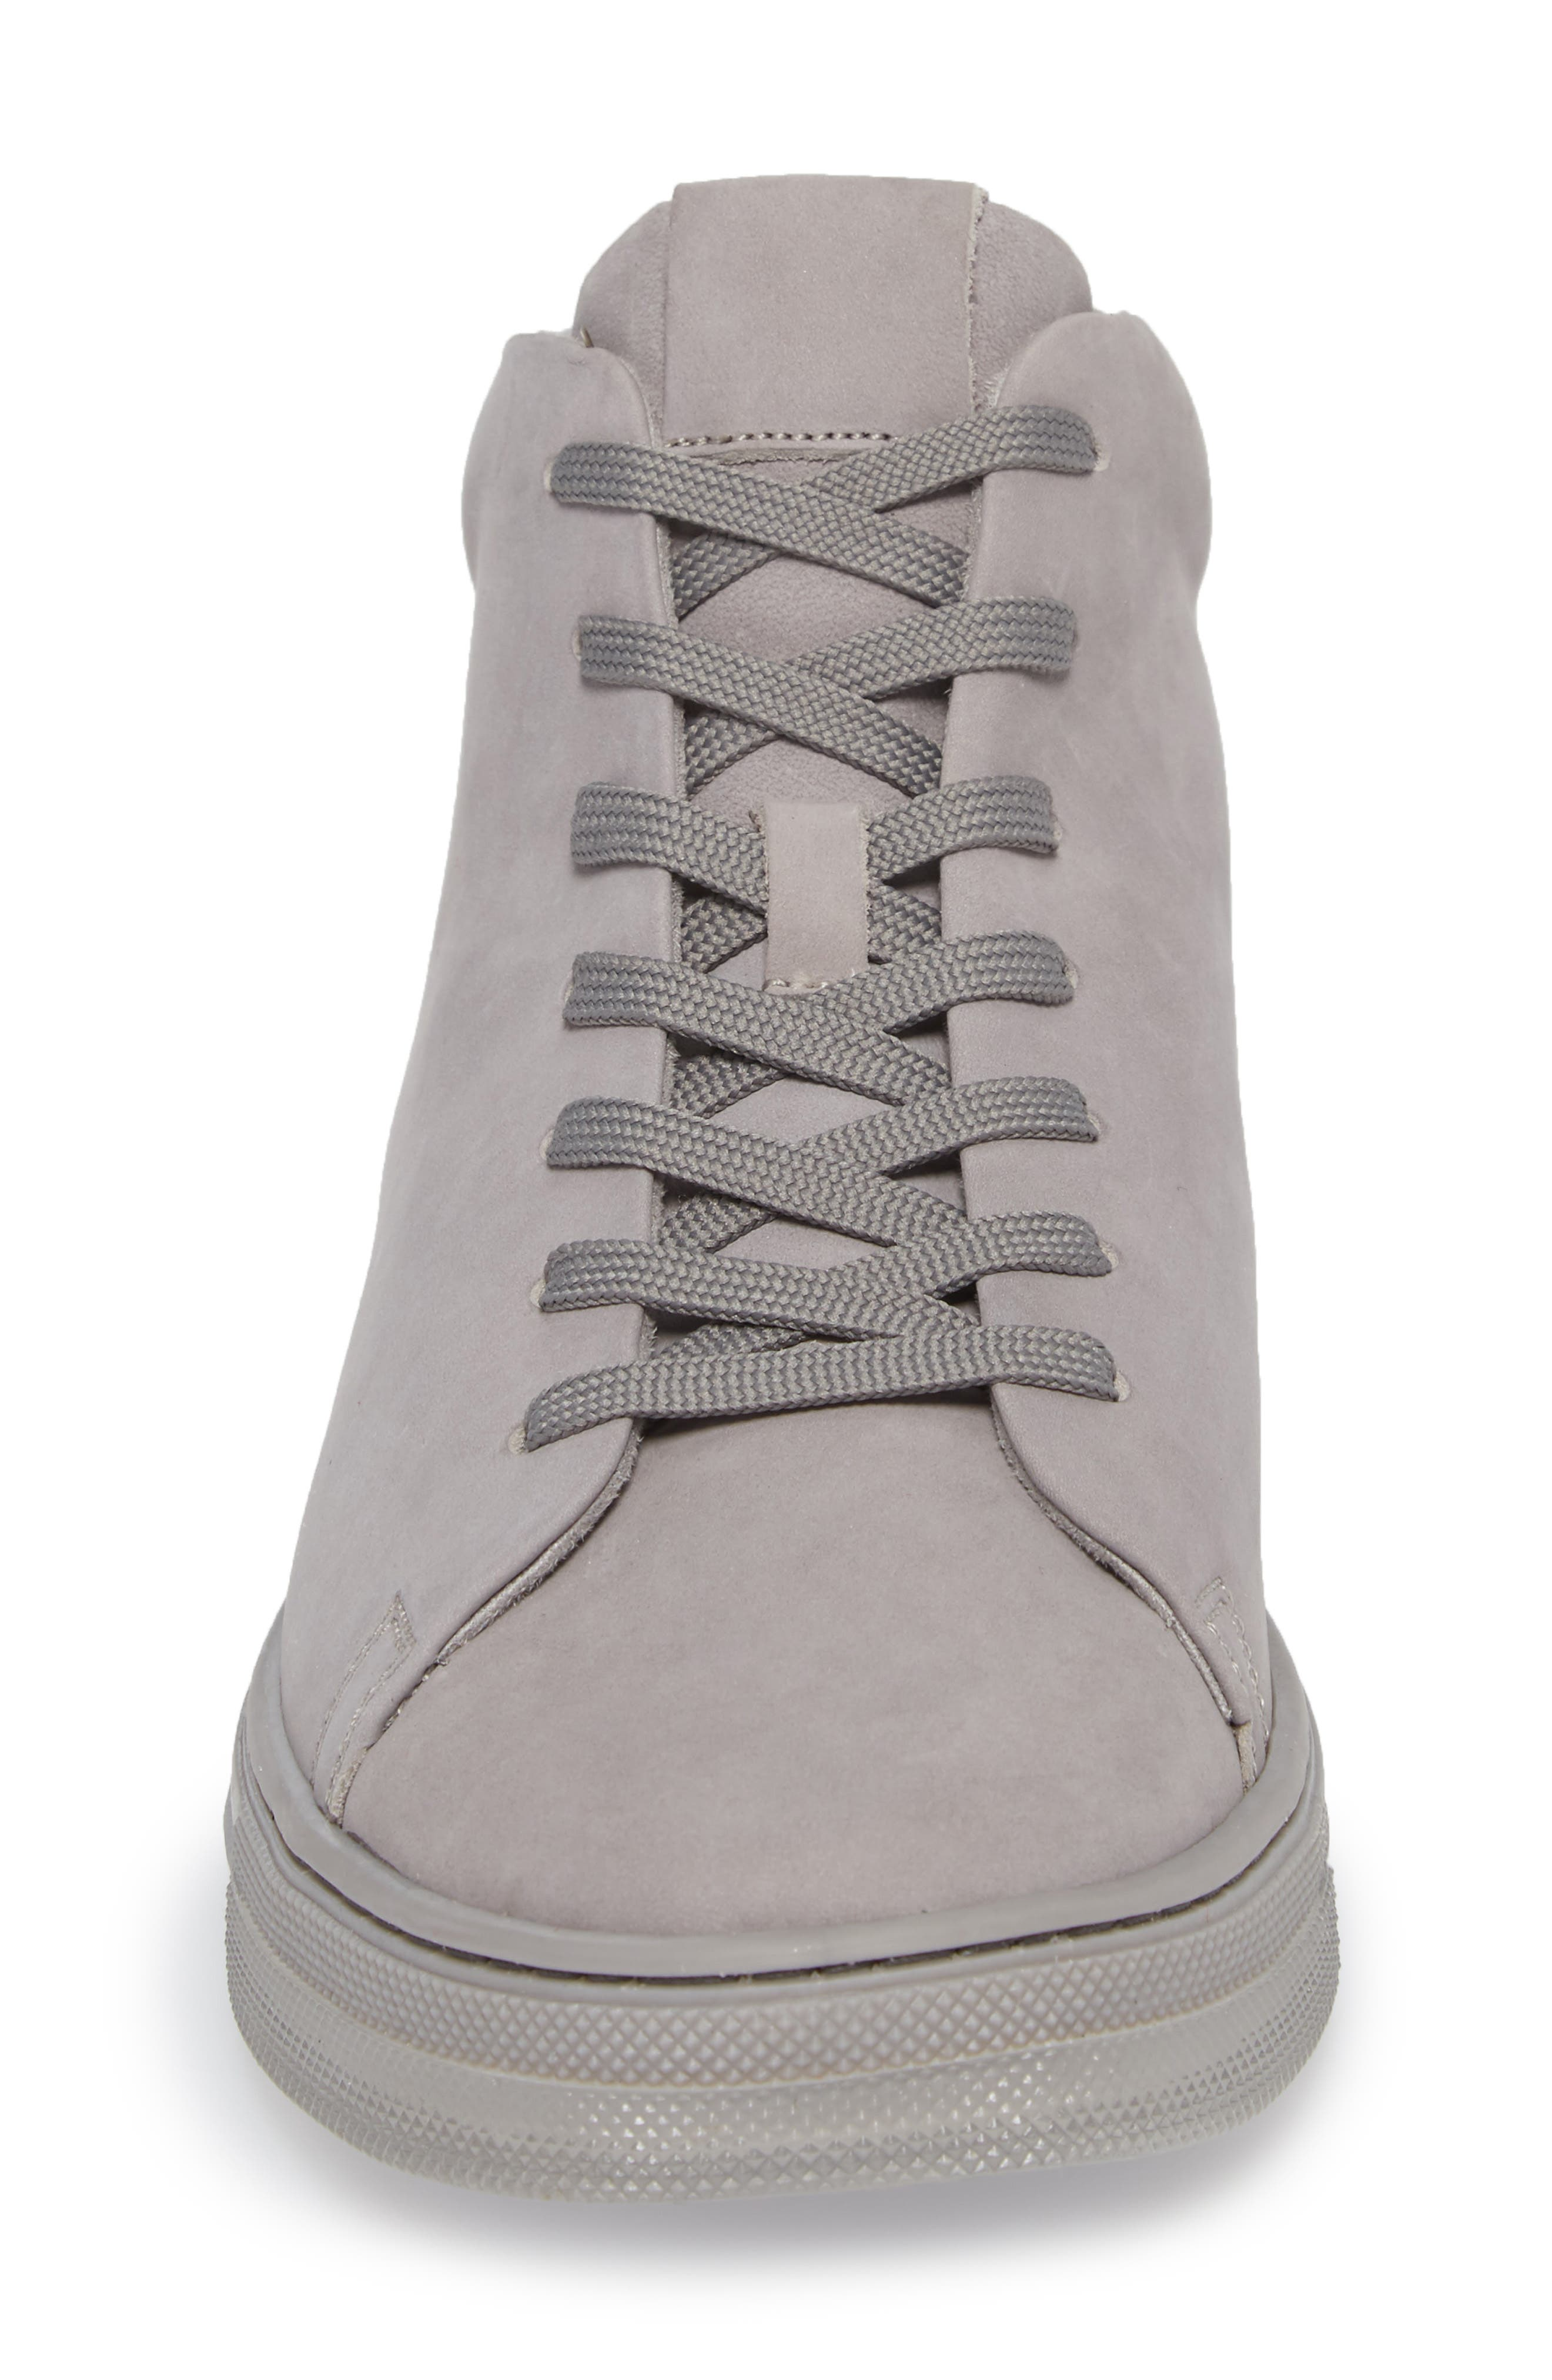 Colvin Sneaker,                             Alternate thumbnail 4, color,                             050